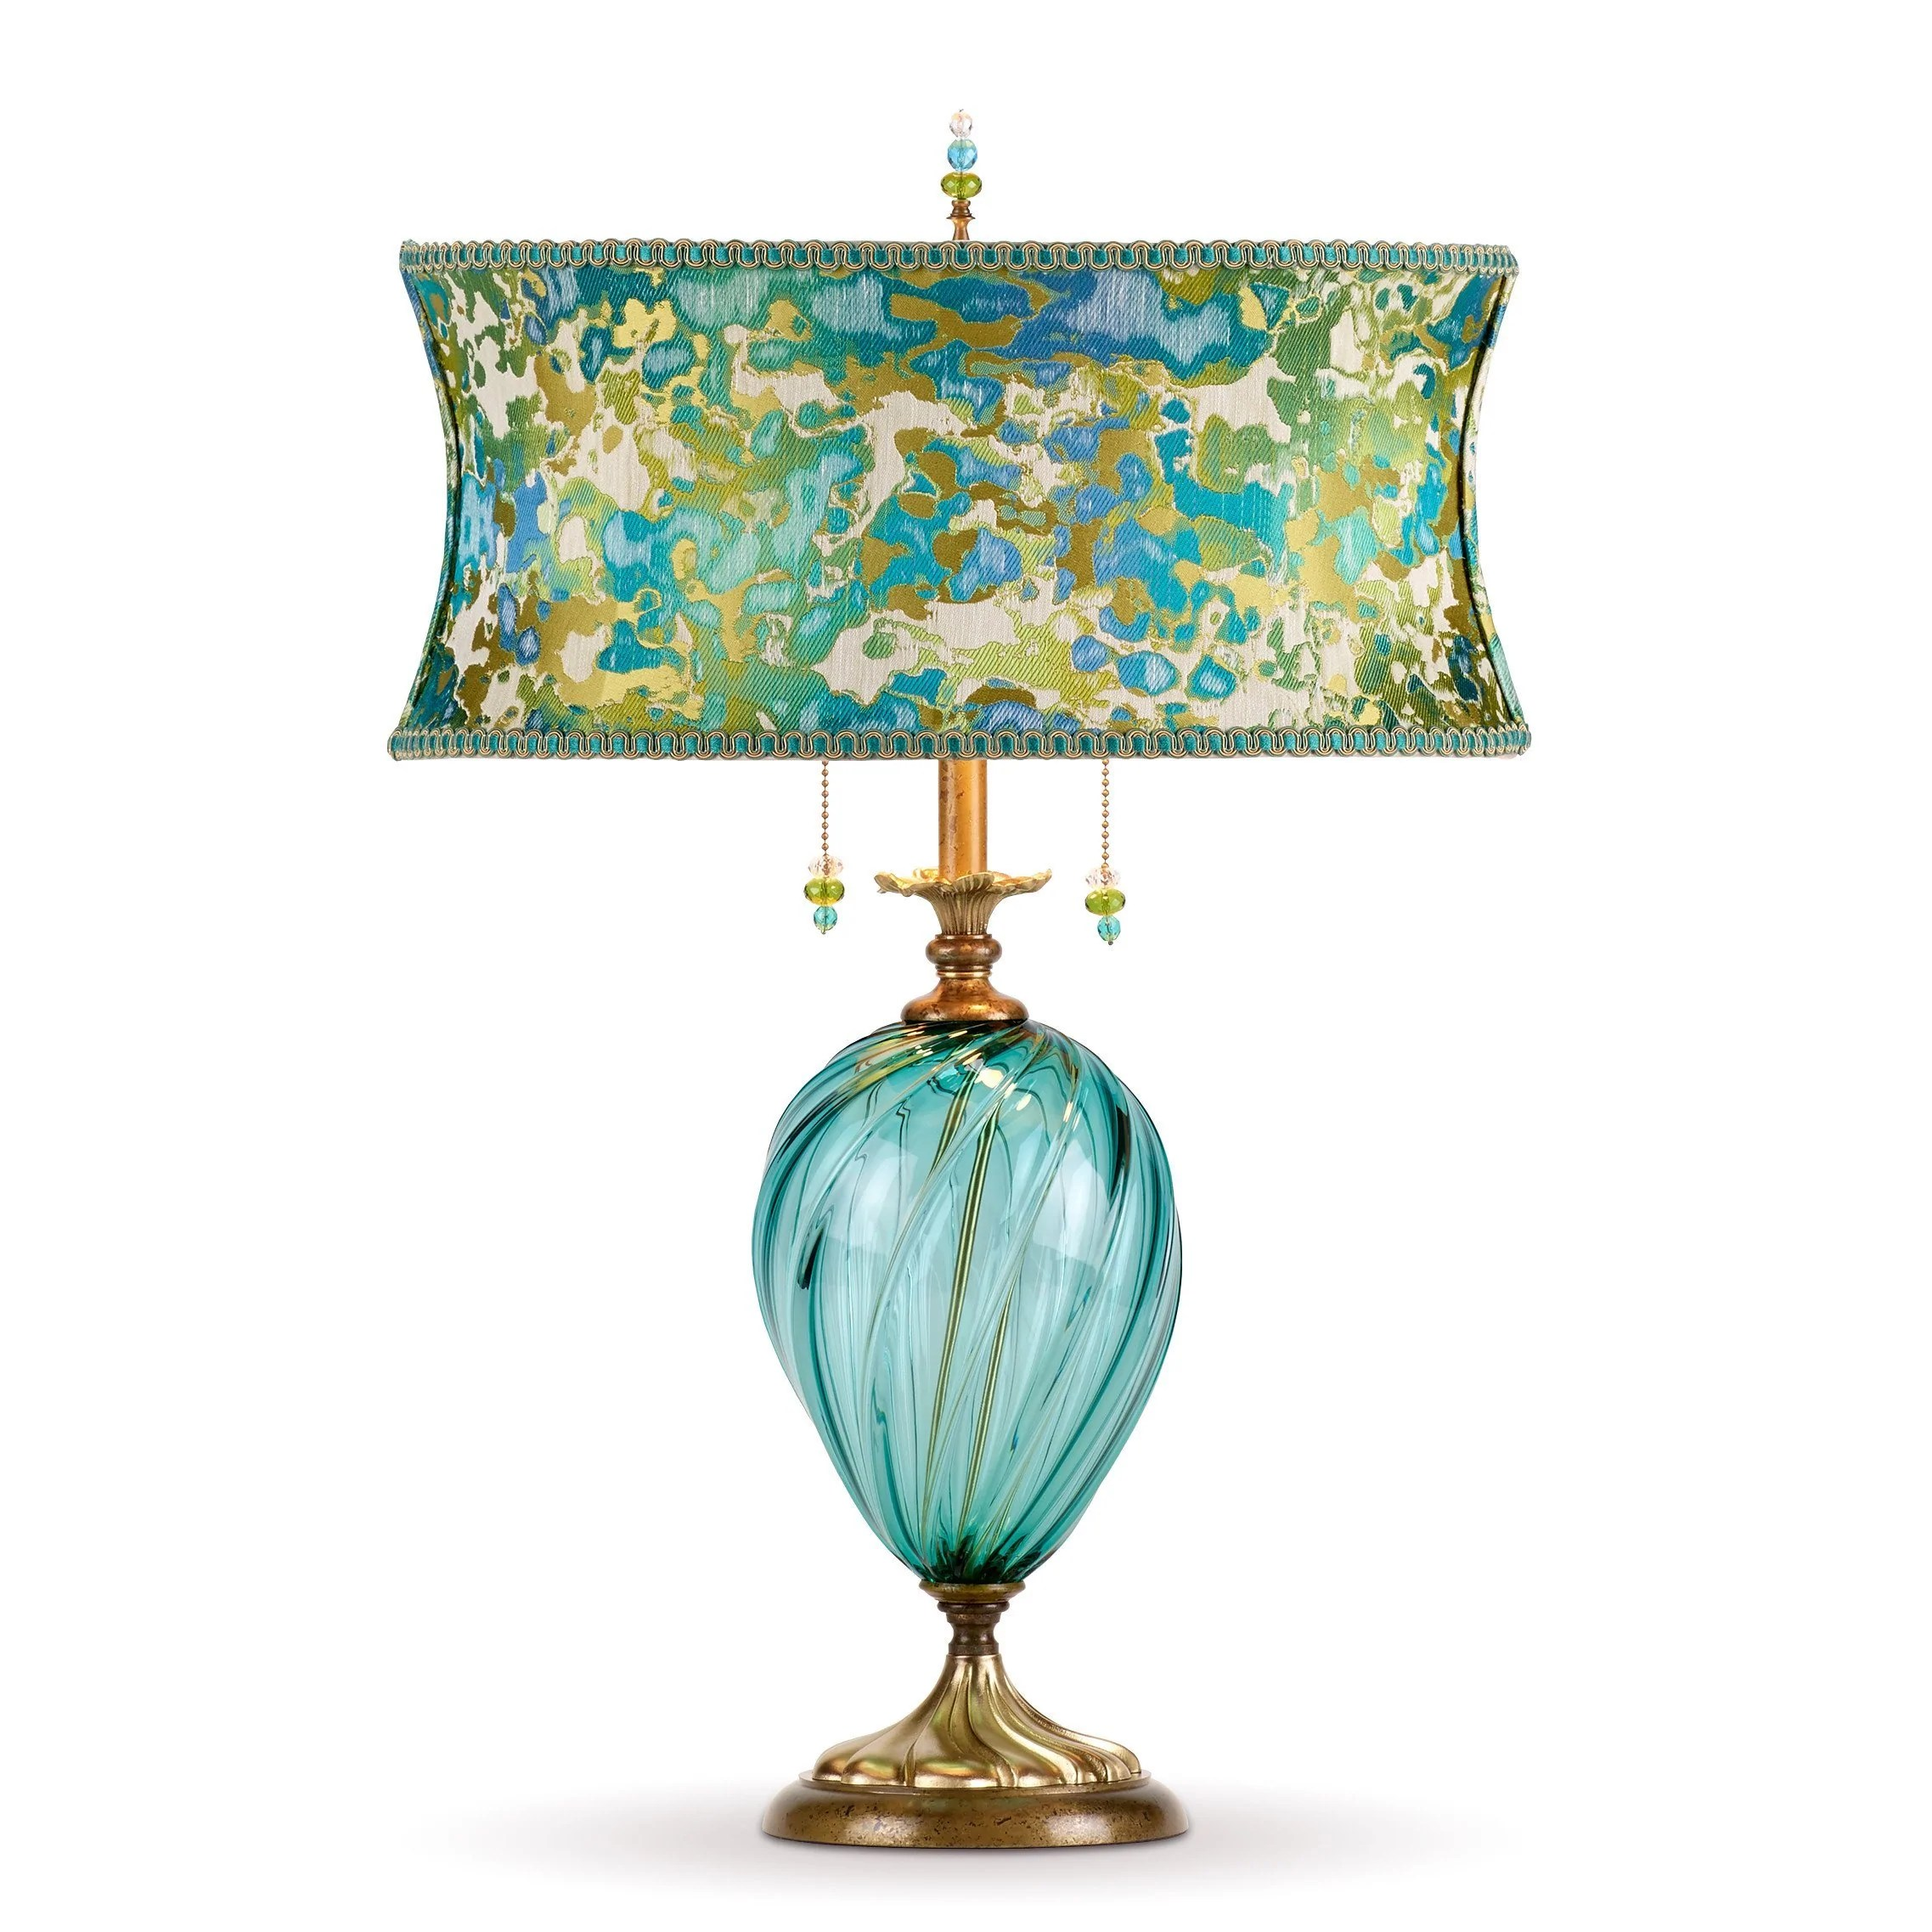 Lucille Table Lamp Kinzig Design Turquoise Blue Lime Blown Glass Silk Shade Sweetheart Gallery Contemporary Craft Gallery Fine American Craft Art Design Handmade Home Personal Accessories